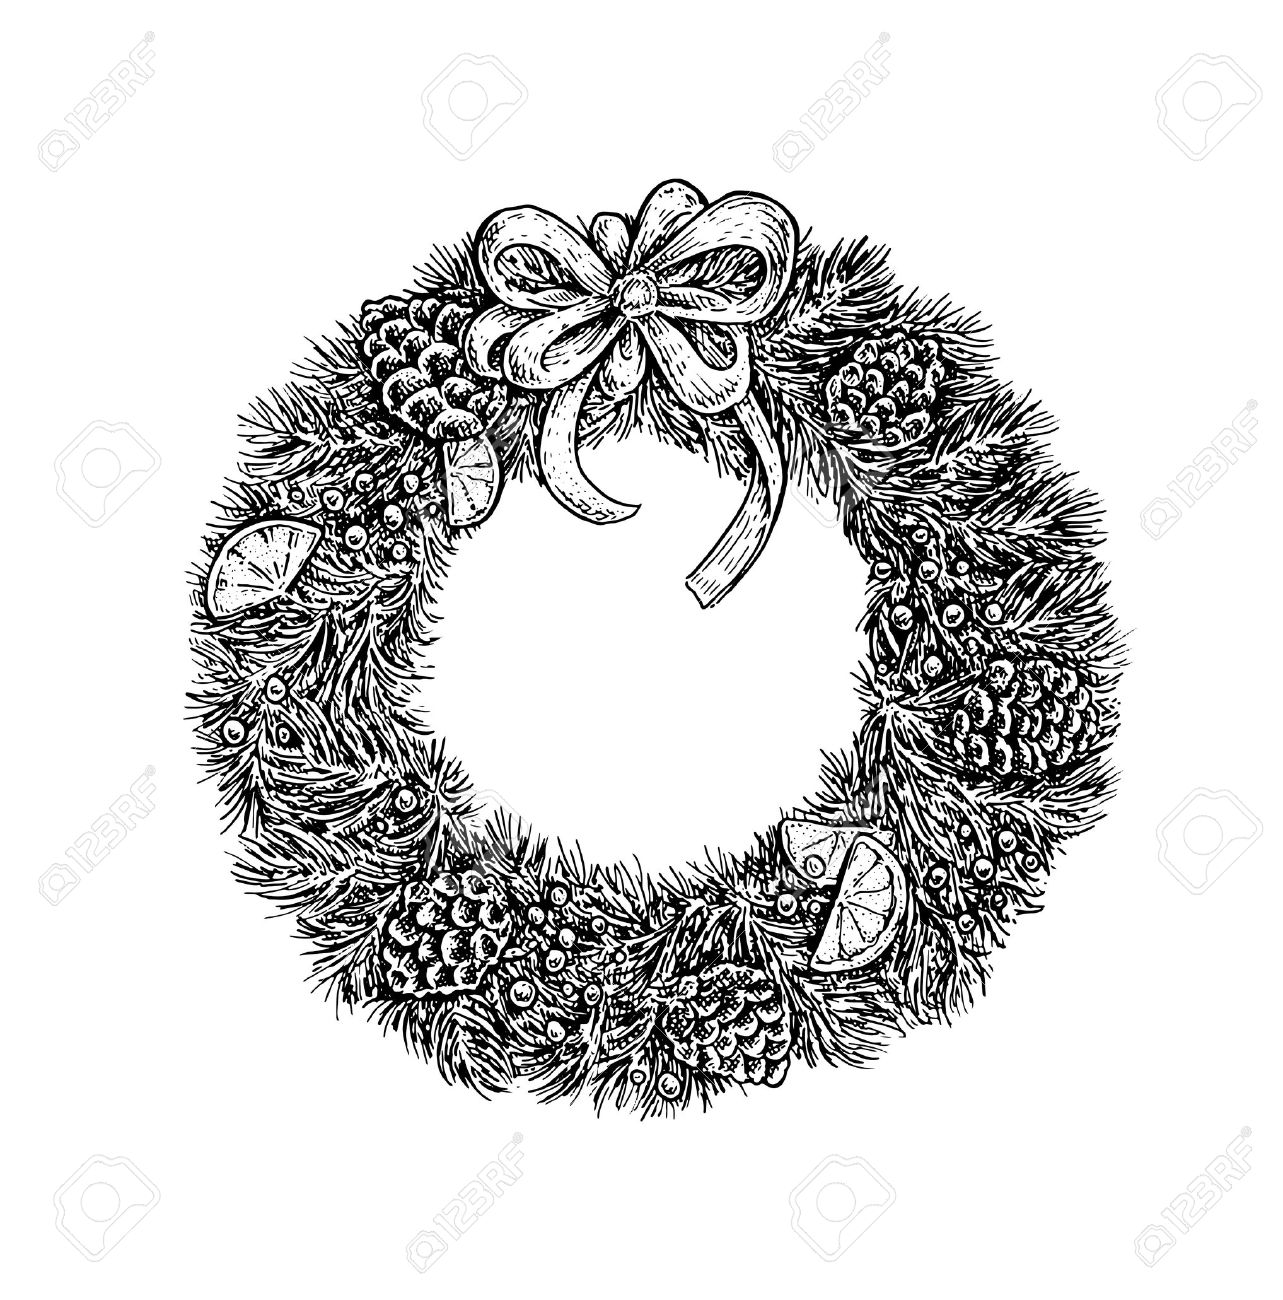 Black And White Vintage Sketchy Style Illustration Of A Christmas Wreath Vector Design Stock